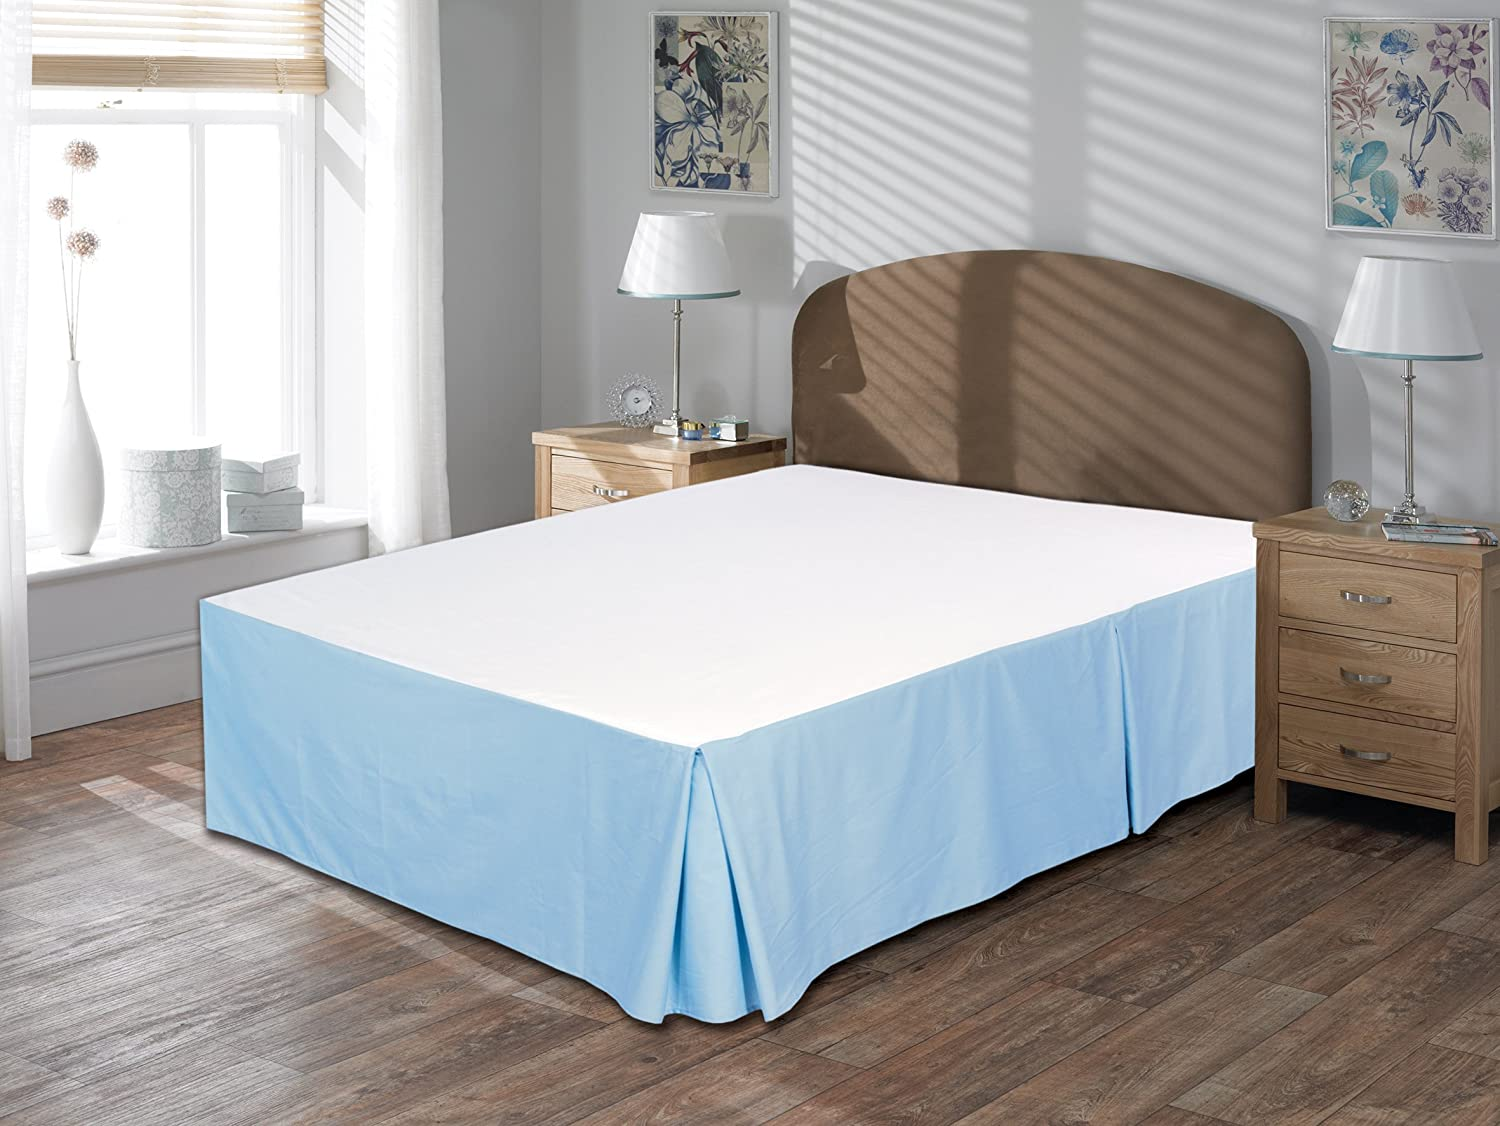 Utopia Bedding Cotton Sateen Bed-Skirt Queen, Blue